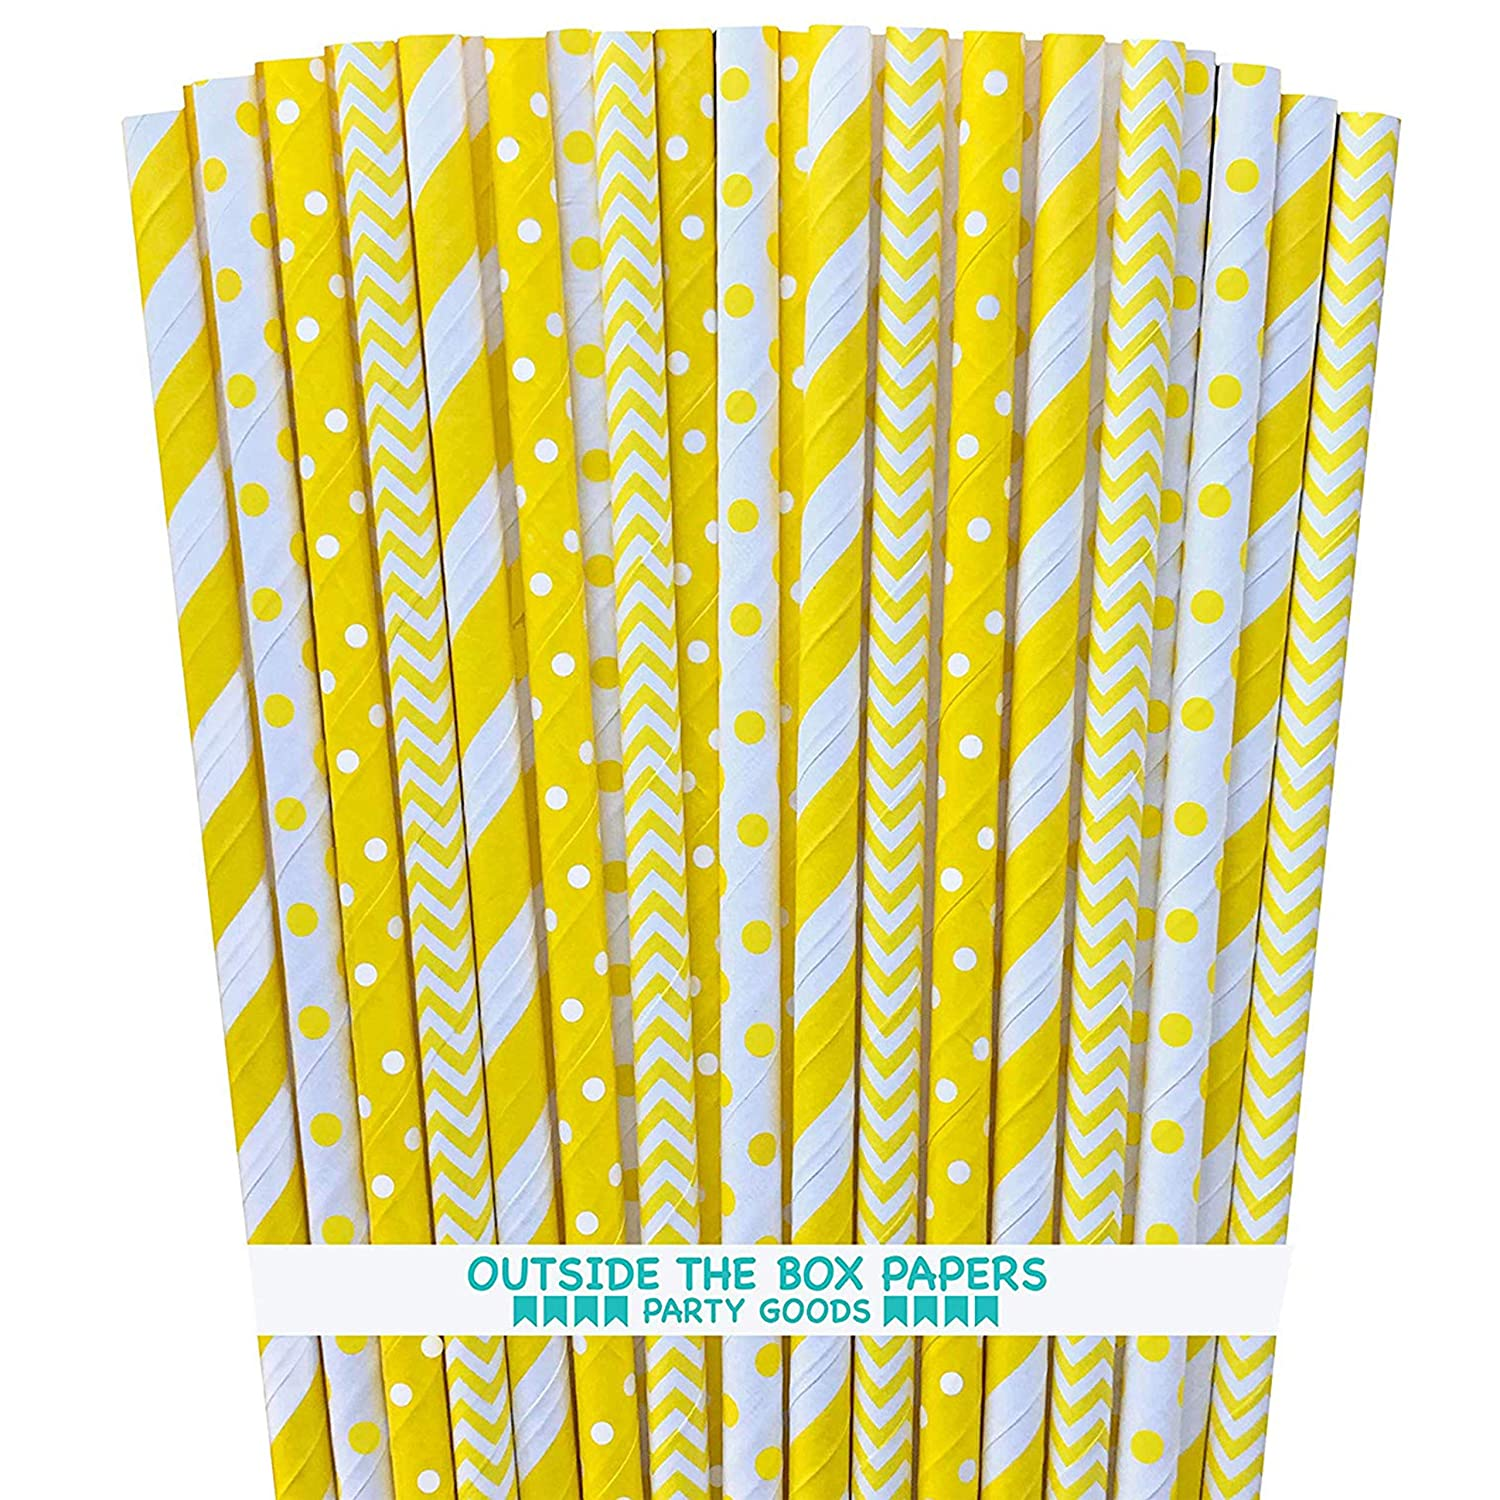 Yellow and White Paper Straws - Stripe Chevron Polka Dot - 7.75 Inches - Pack of 100 - Outside the Box Papers Brand